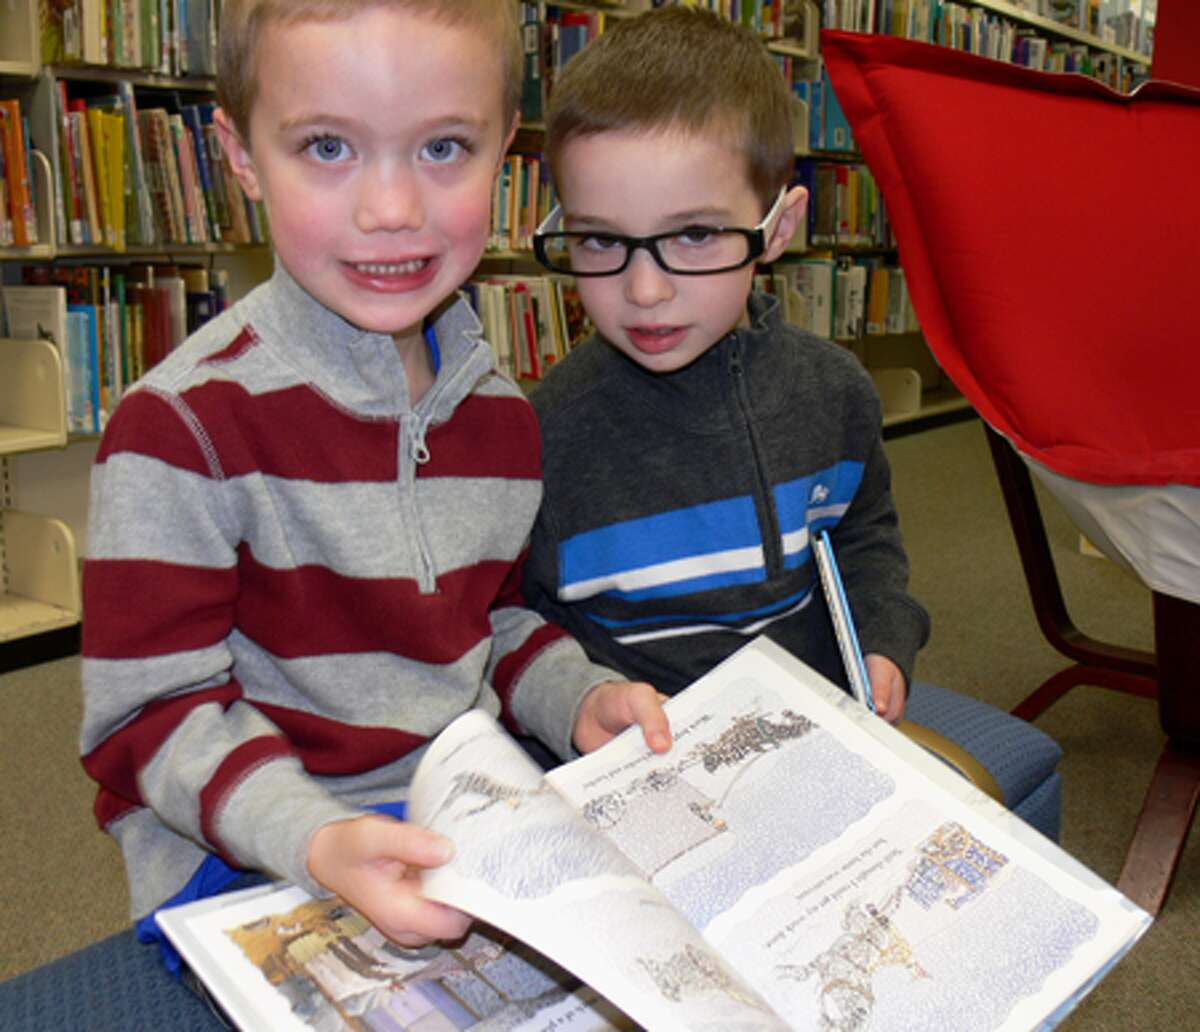 Nolan Royce, 5, and his brother Landon, 4, take a break from reading a book while waiting to meet with Santa at the library.